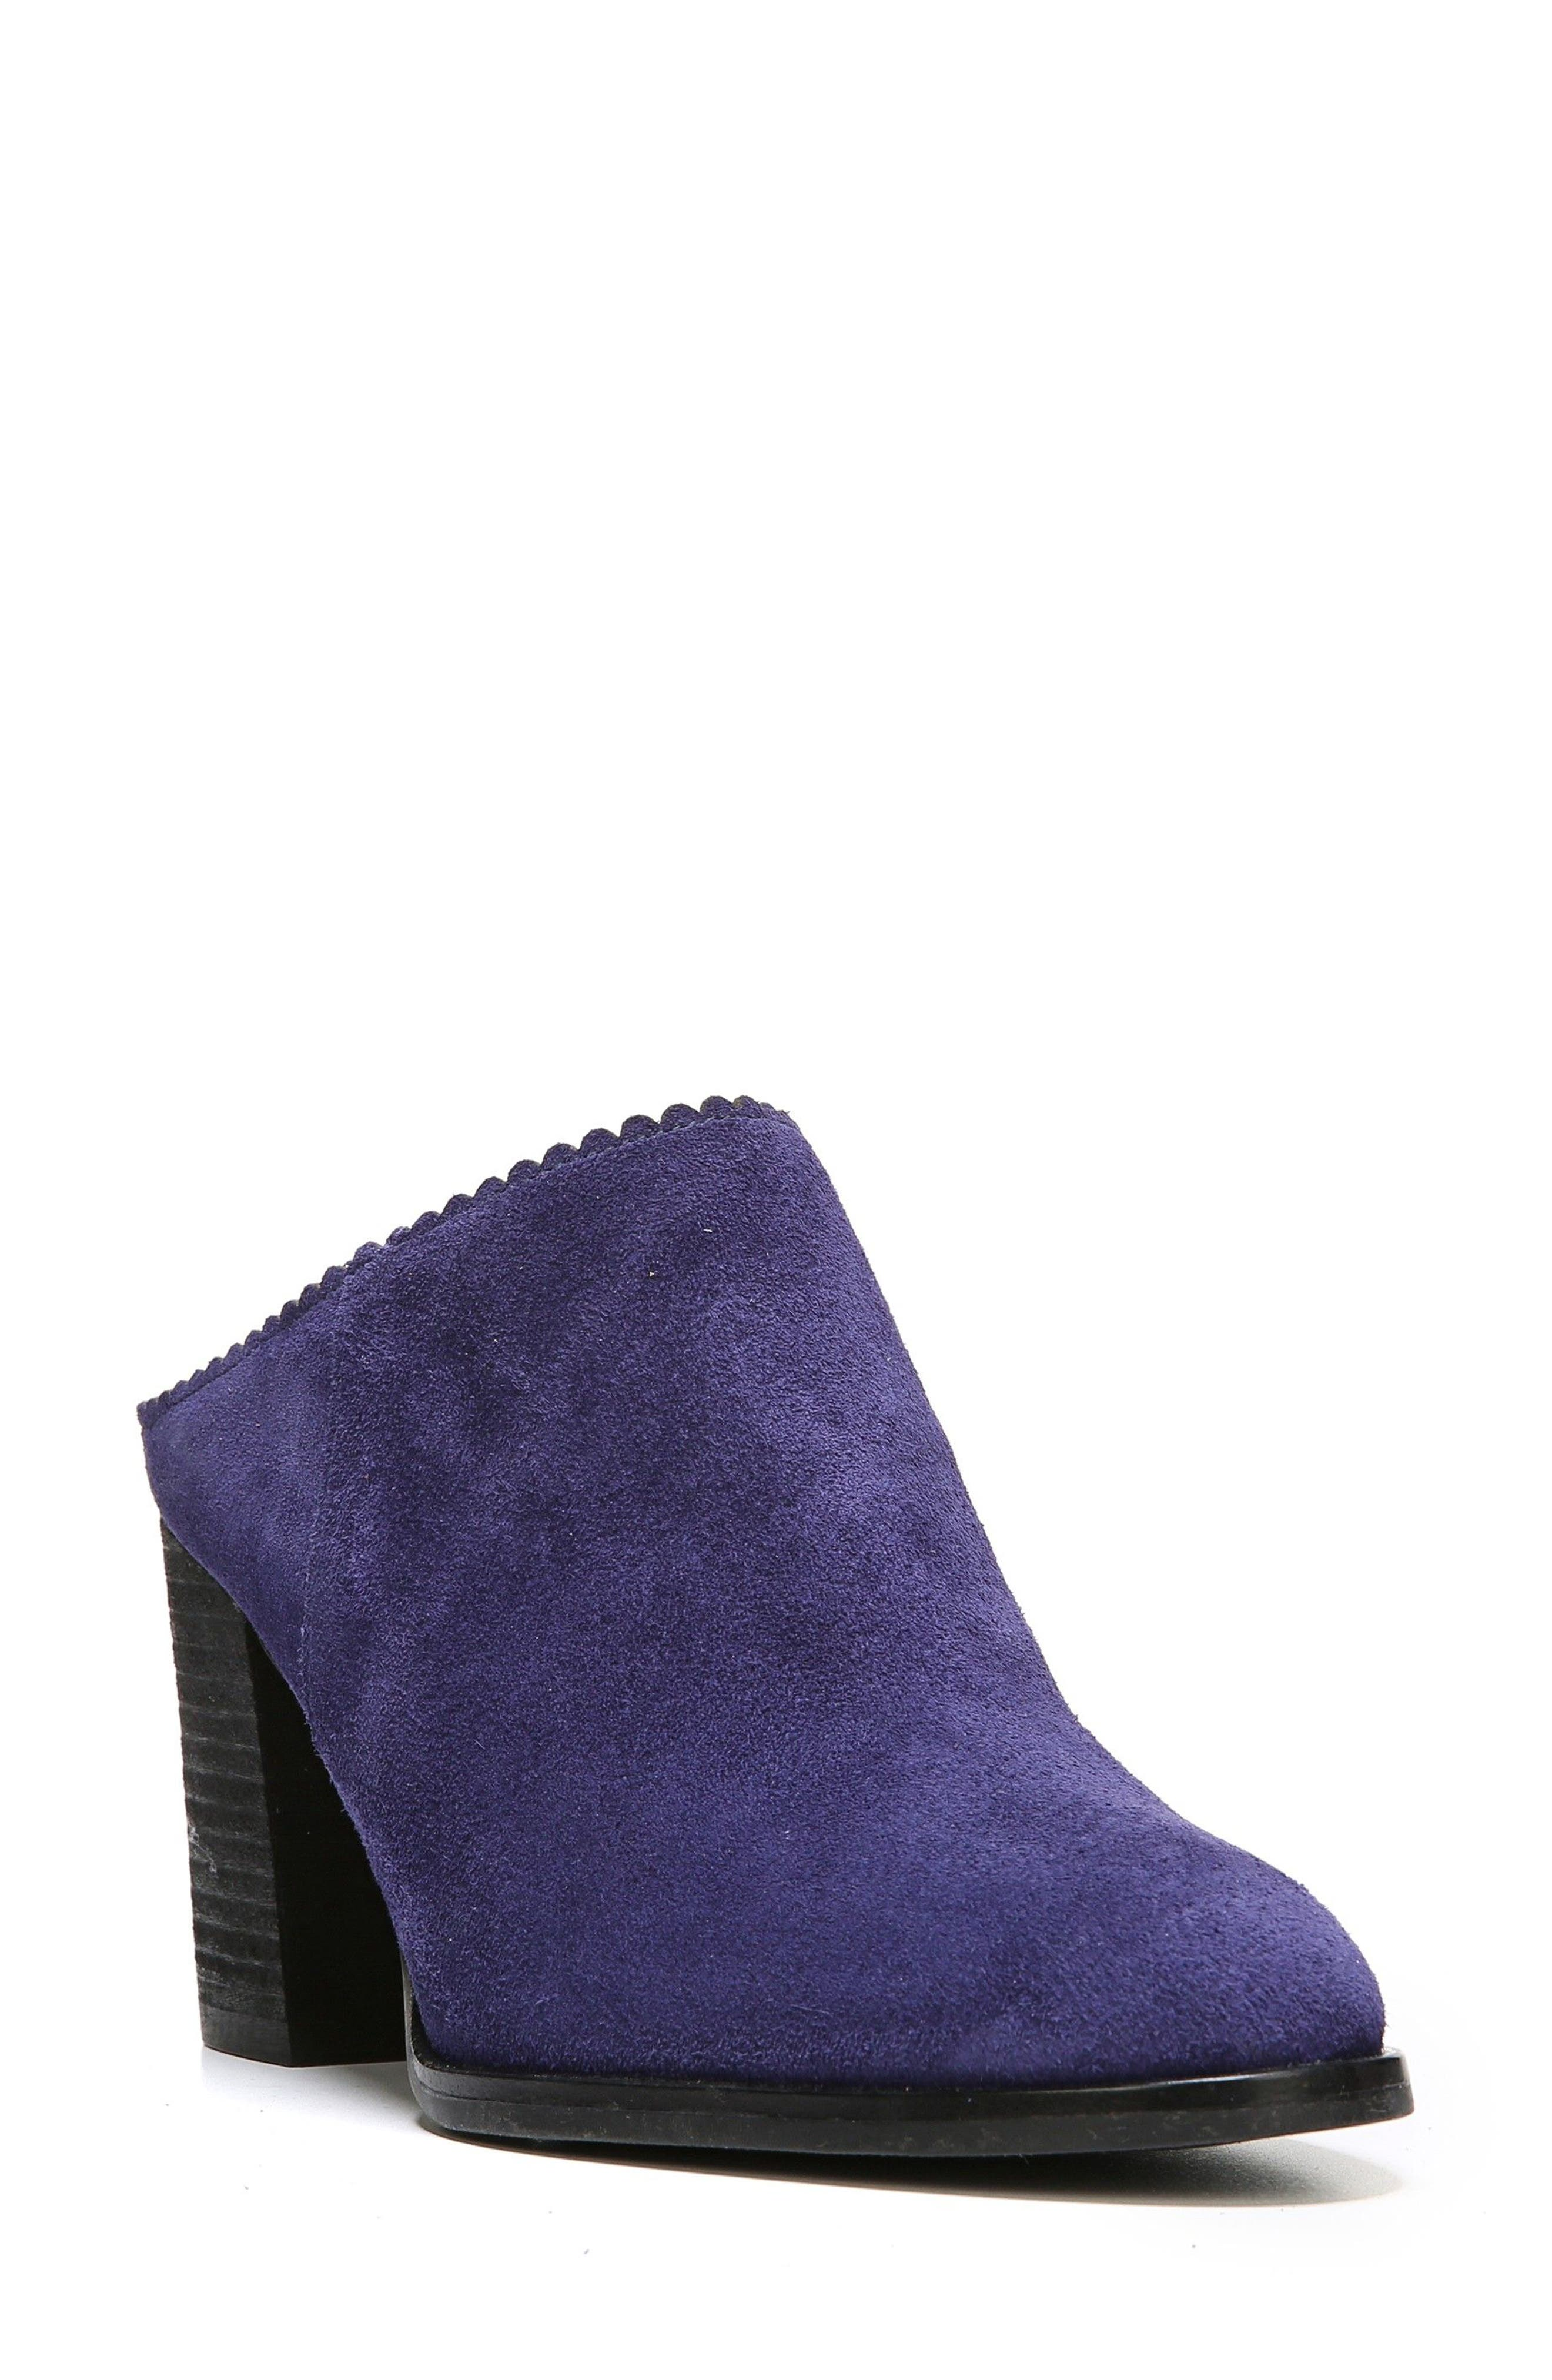 Alternate Image 1 Selected - Via Spiga Sophia Block Heel Mule (Women)